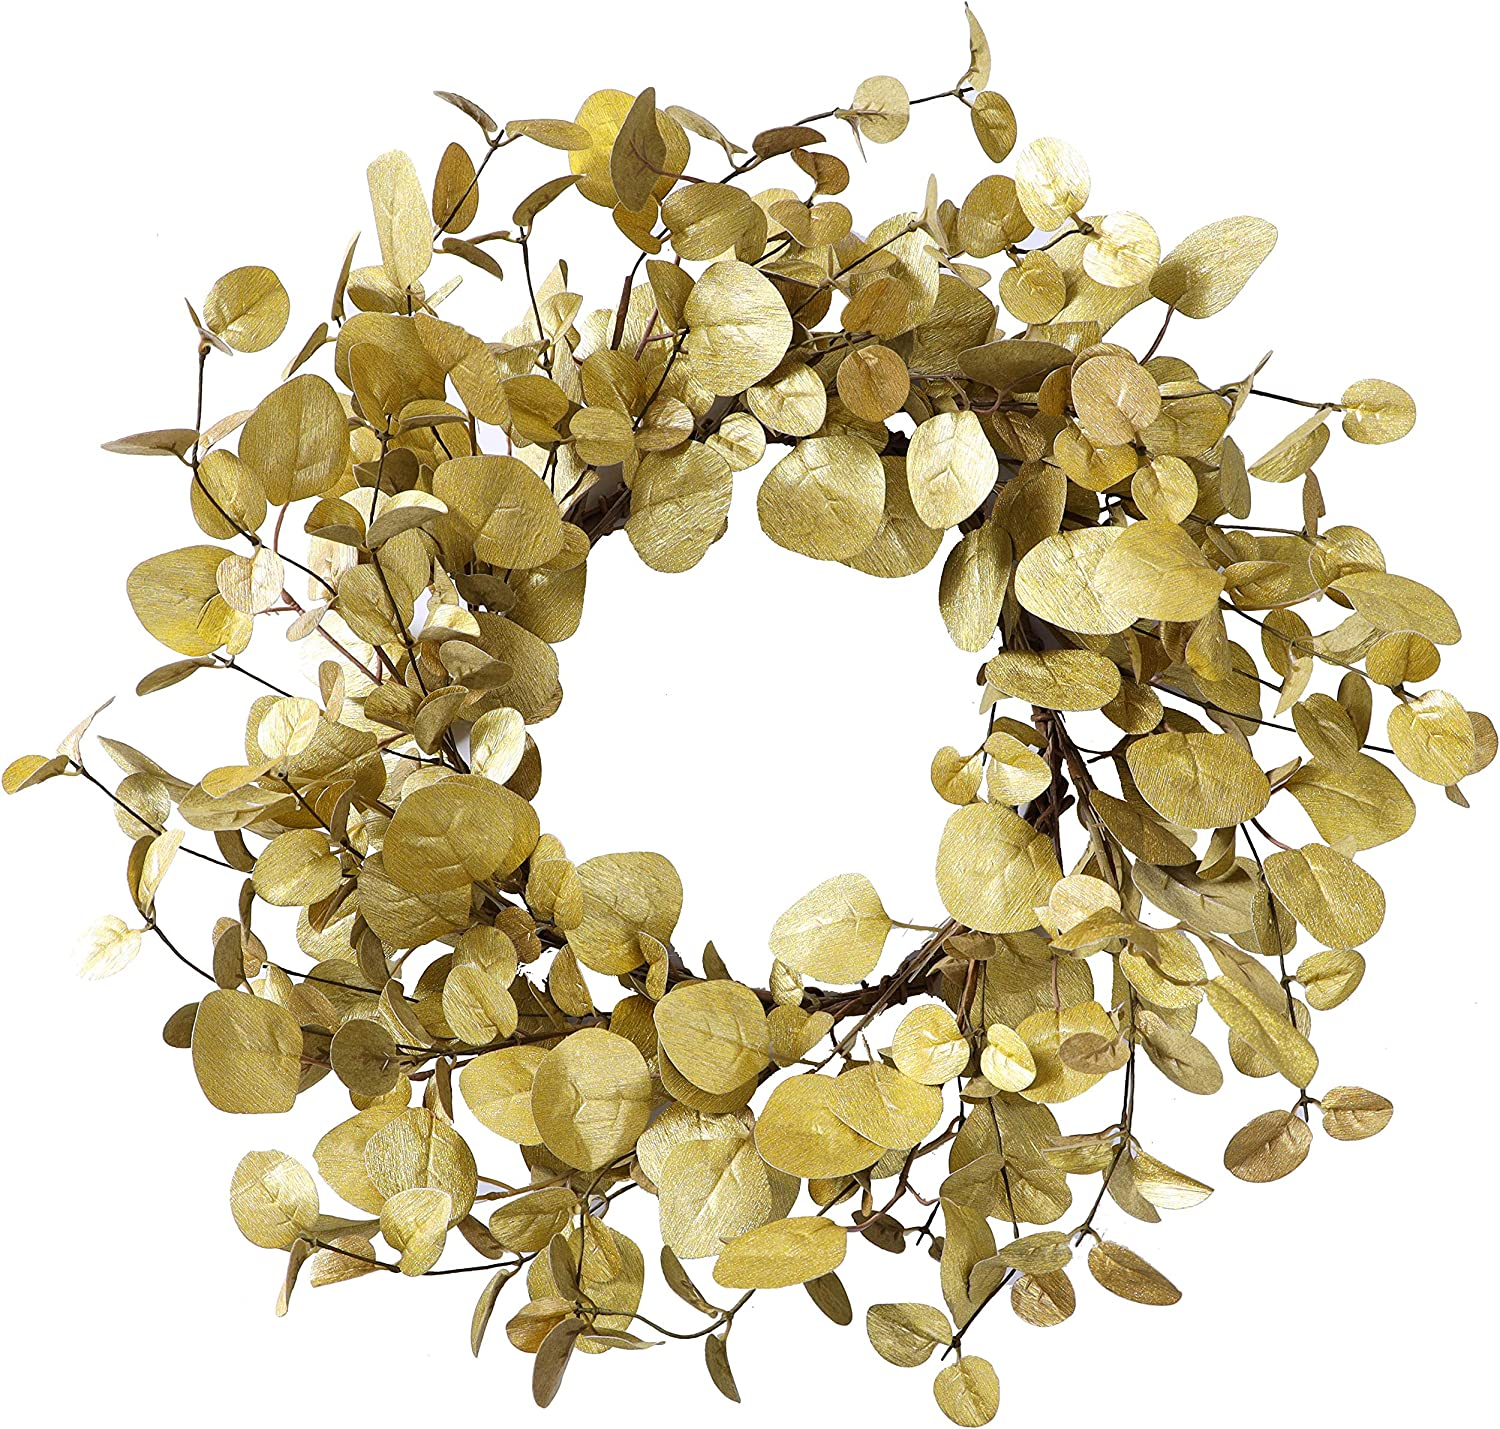 YNYLCHMX Christmas Wreath for Front Door, Artificial Door Wreath Flushed with Gold Eucalyptus Leaves, Home Decor for Wall, Fireplace, Indoor, Windows, Holiday, Party Decoration, 20 Inch